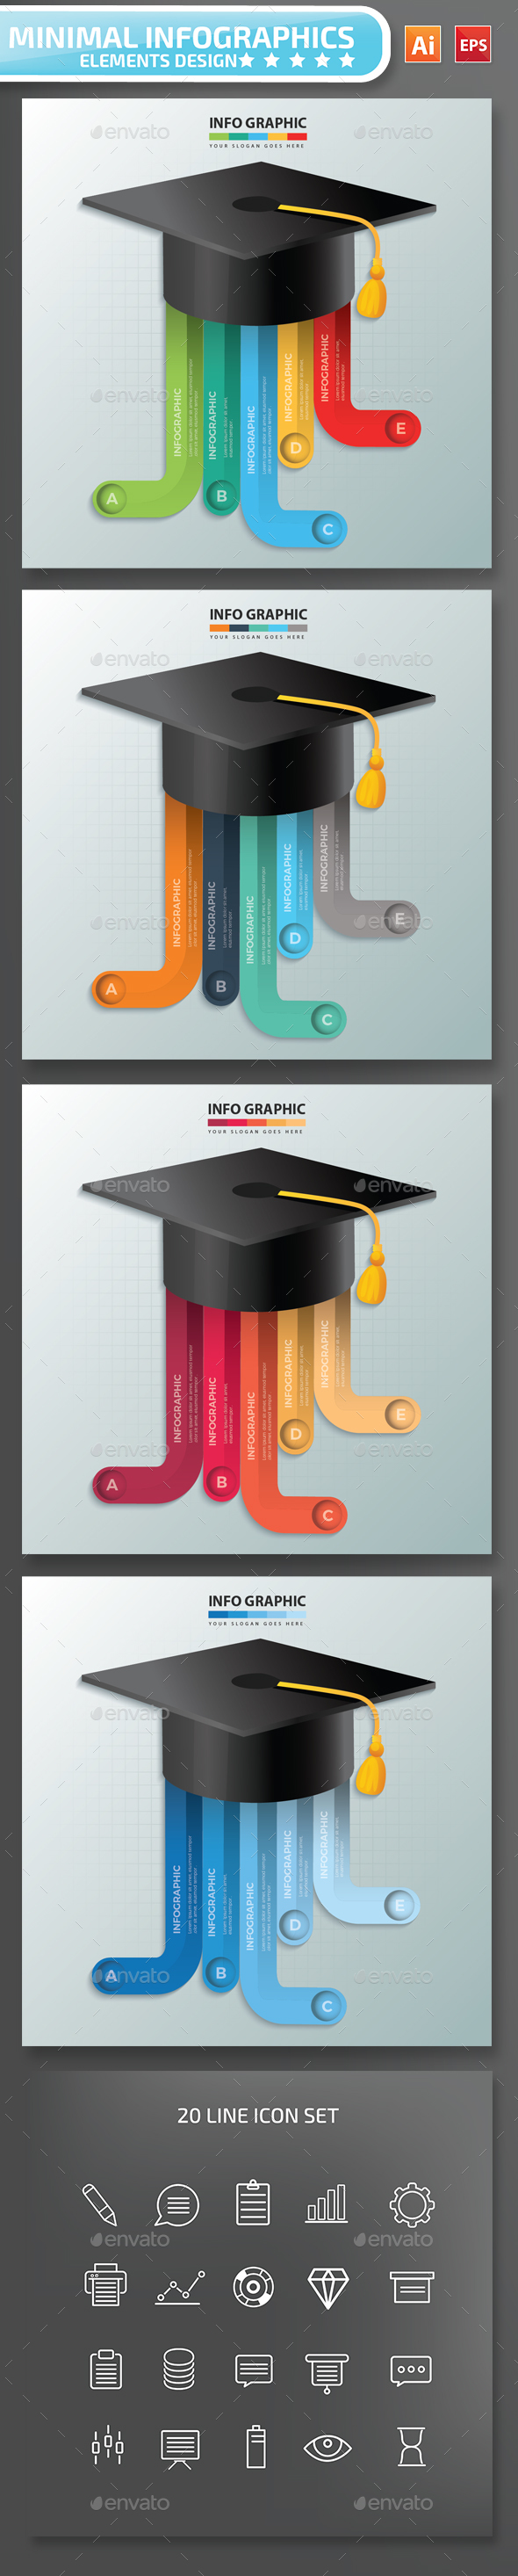 Minimal Education infographic Design - Infographics